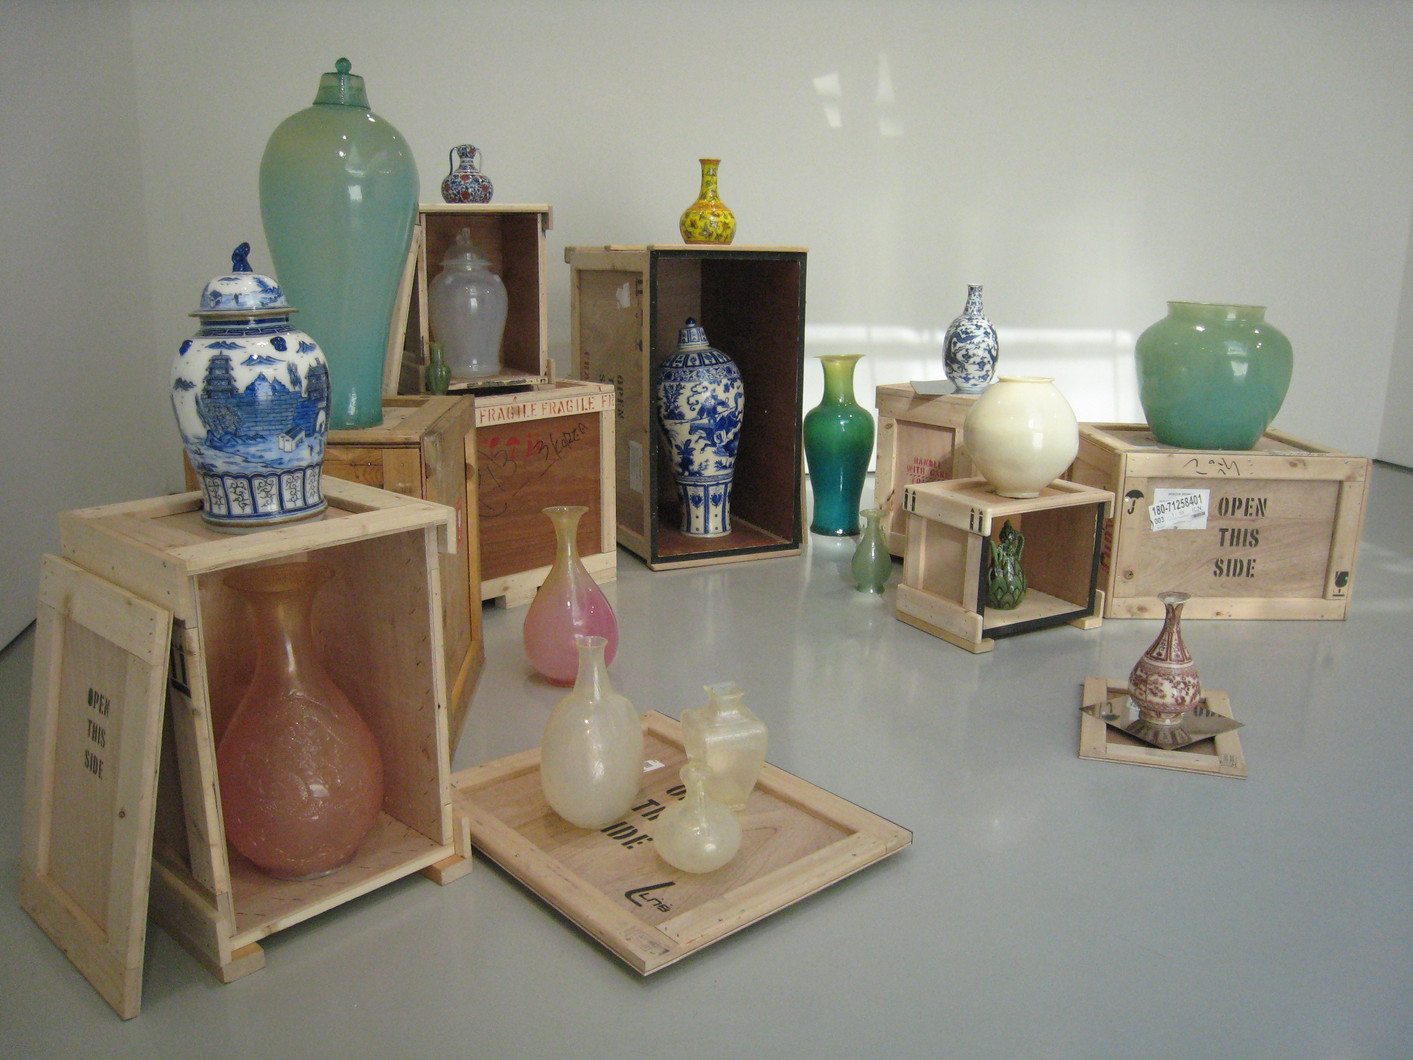 Installation view, As Small As a World and Large as Alone, Gallery Hyundai